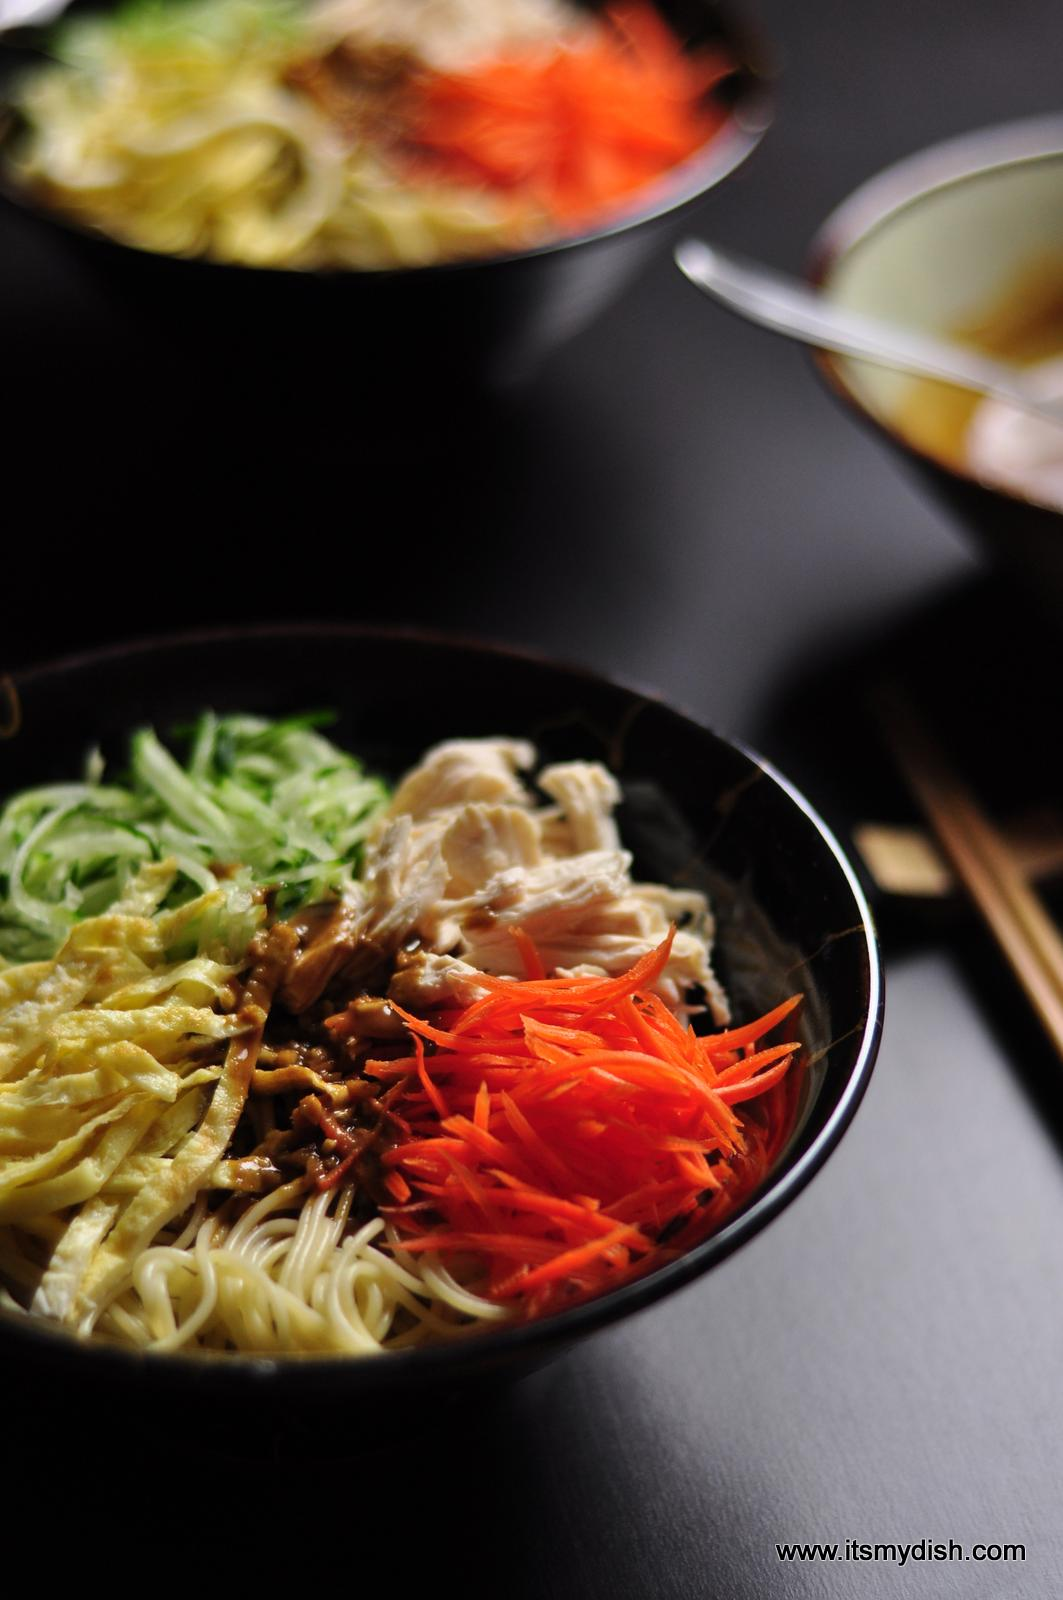 Chinese Cold Noodles 中華涼麵 It S My Dish